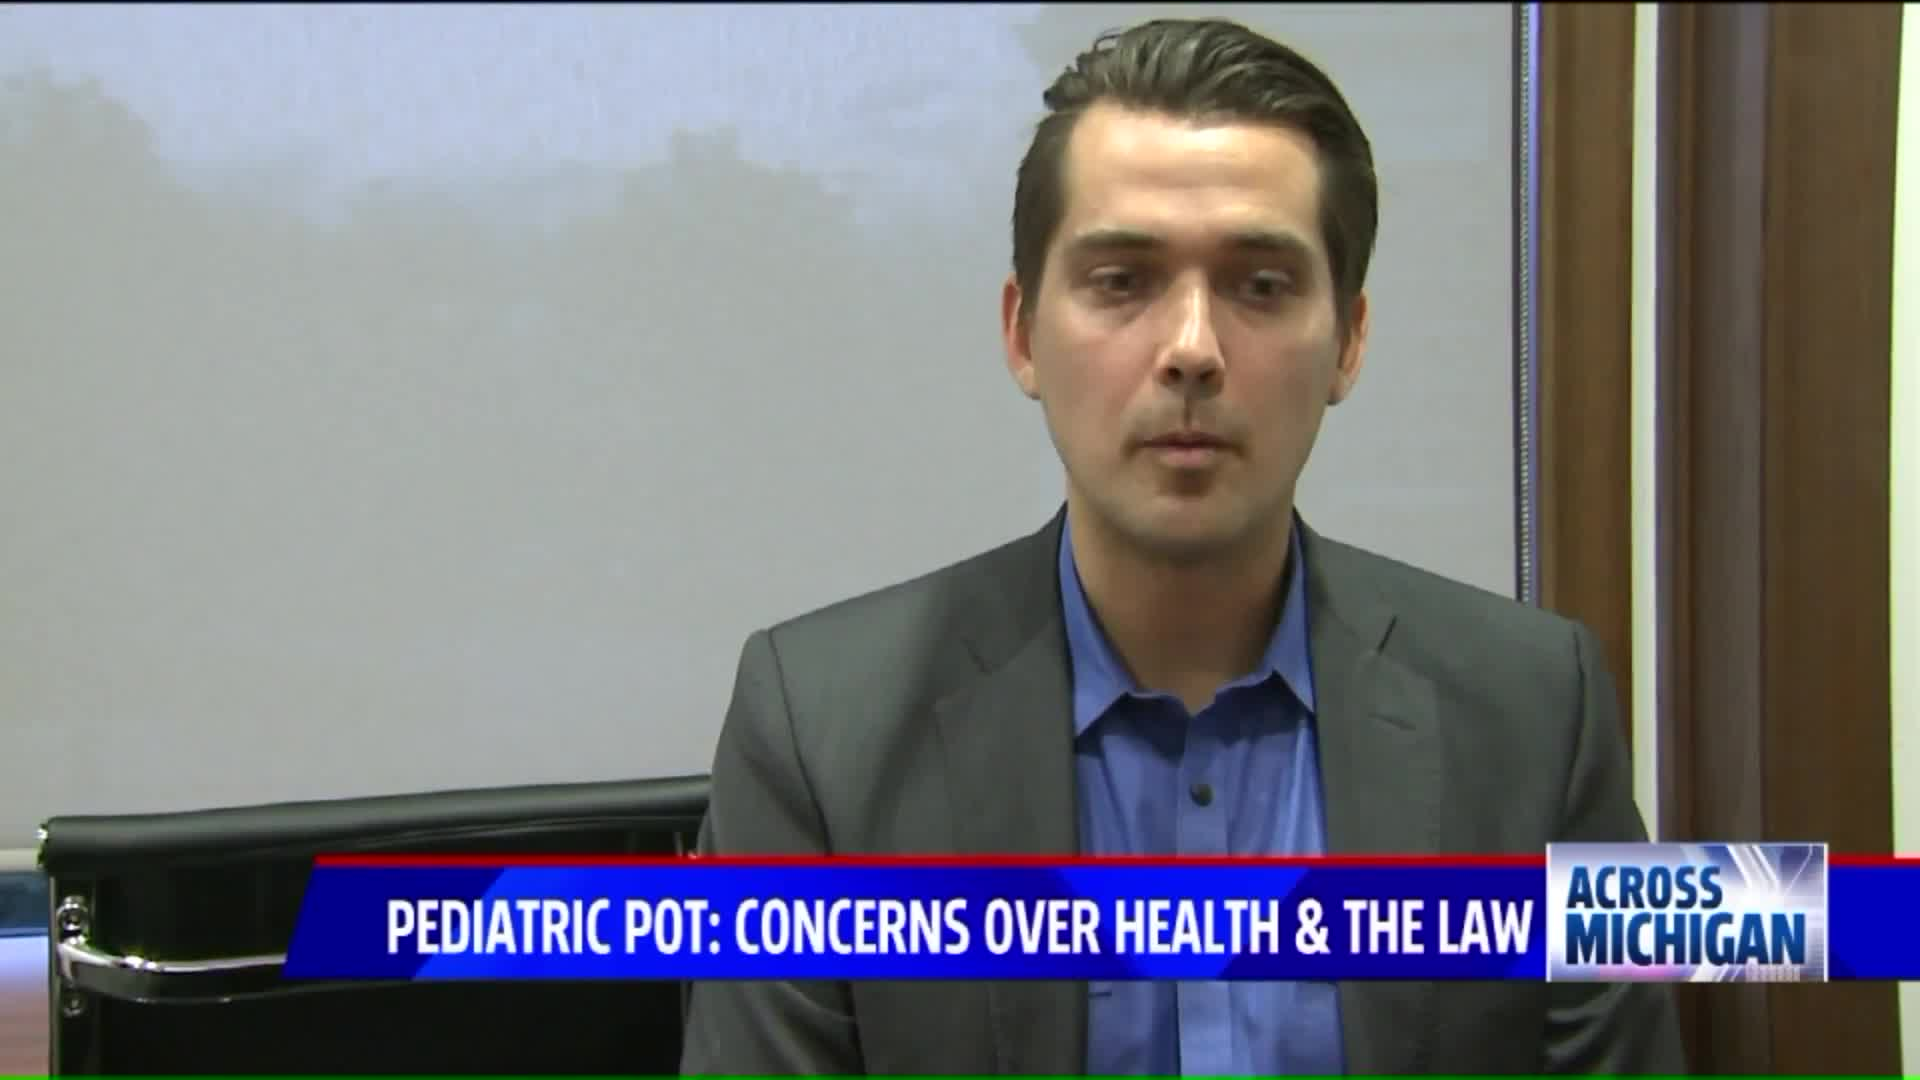 Dad Says Medical Marijuana Laws Make it Difficult to Use Life-Changing Treatment